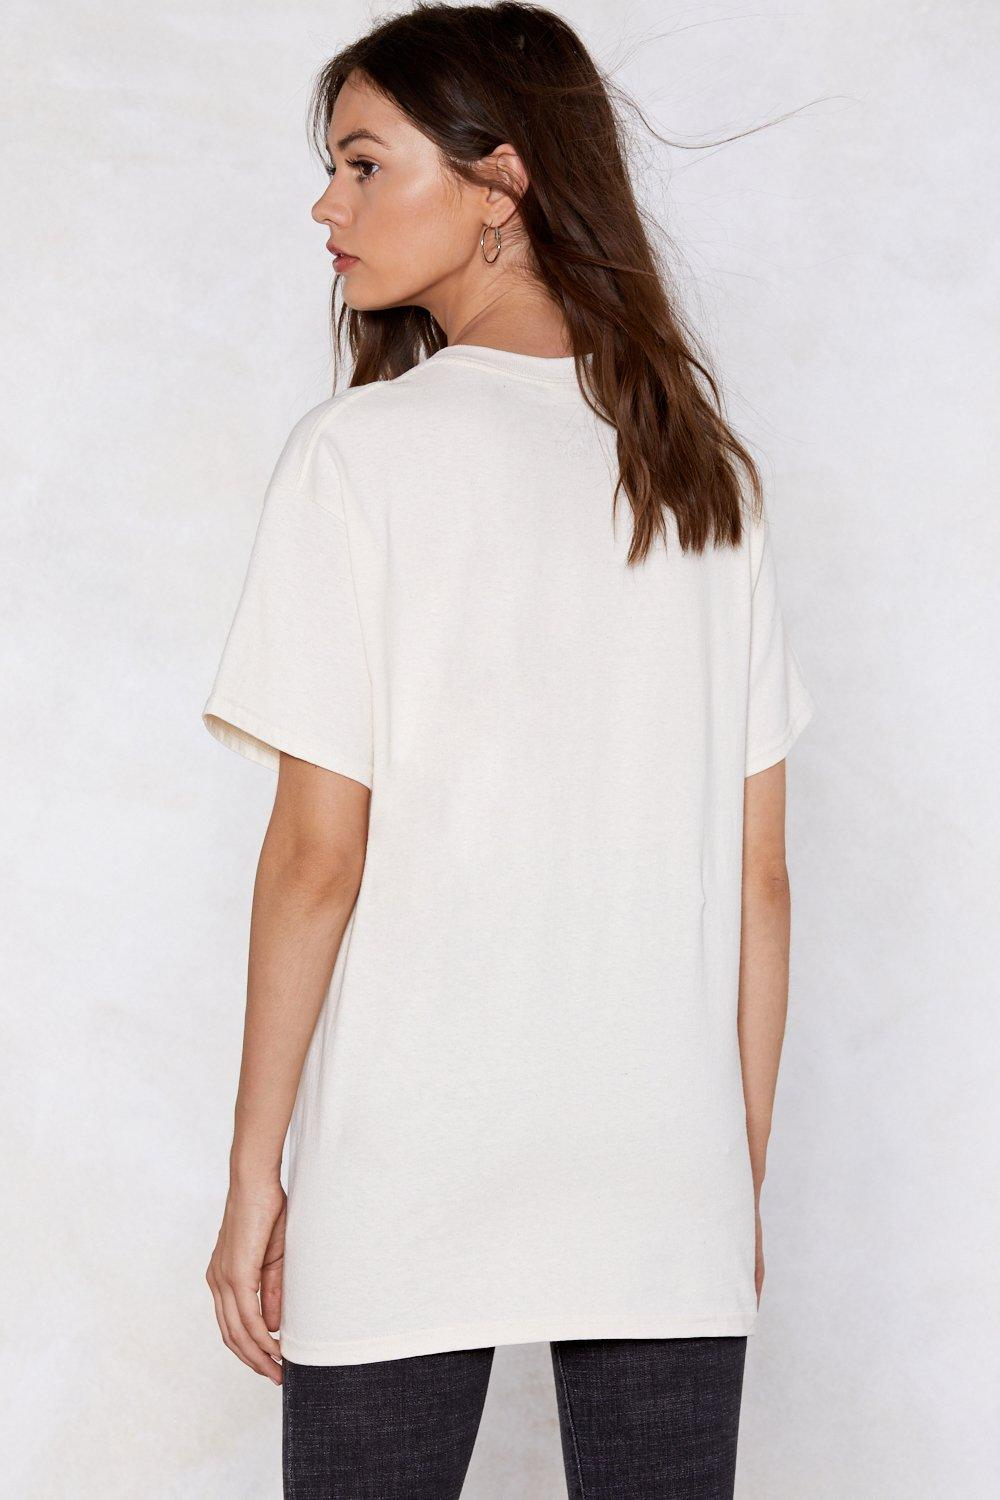 Living In America Relaxed Tee Shop Clothes At Nasty Gal